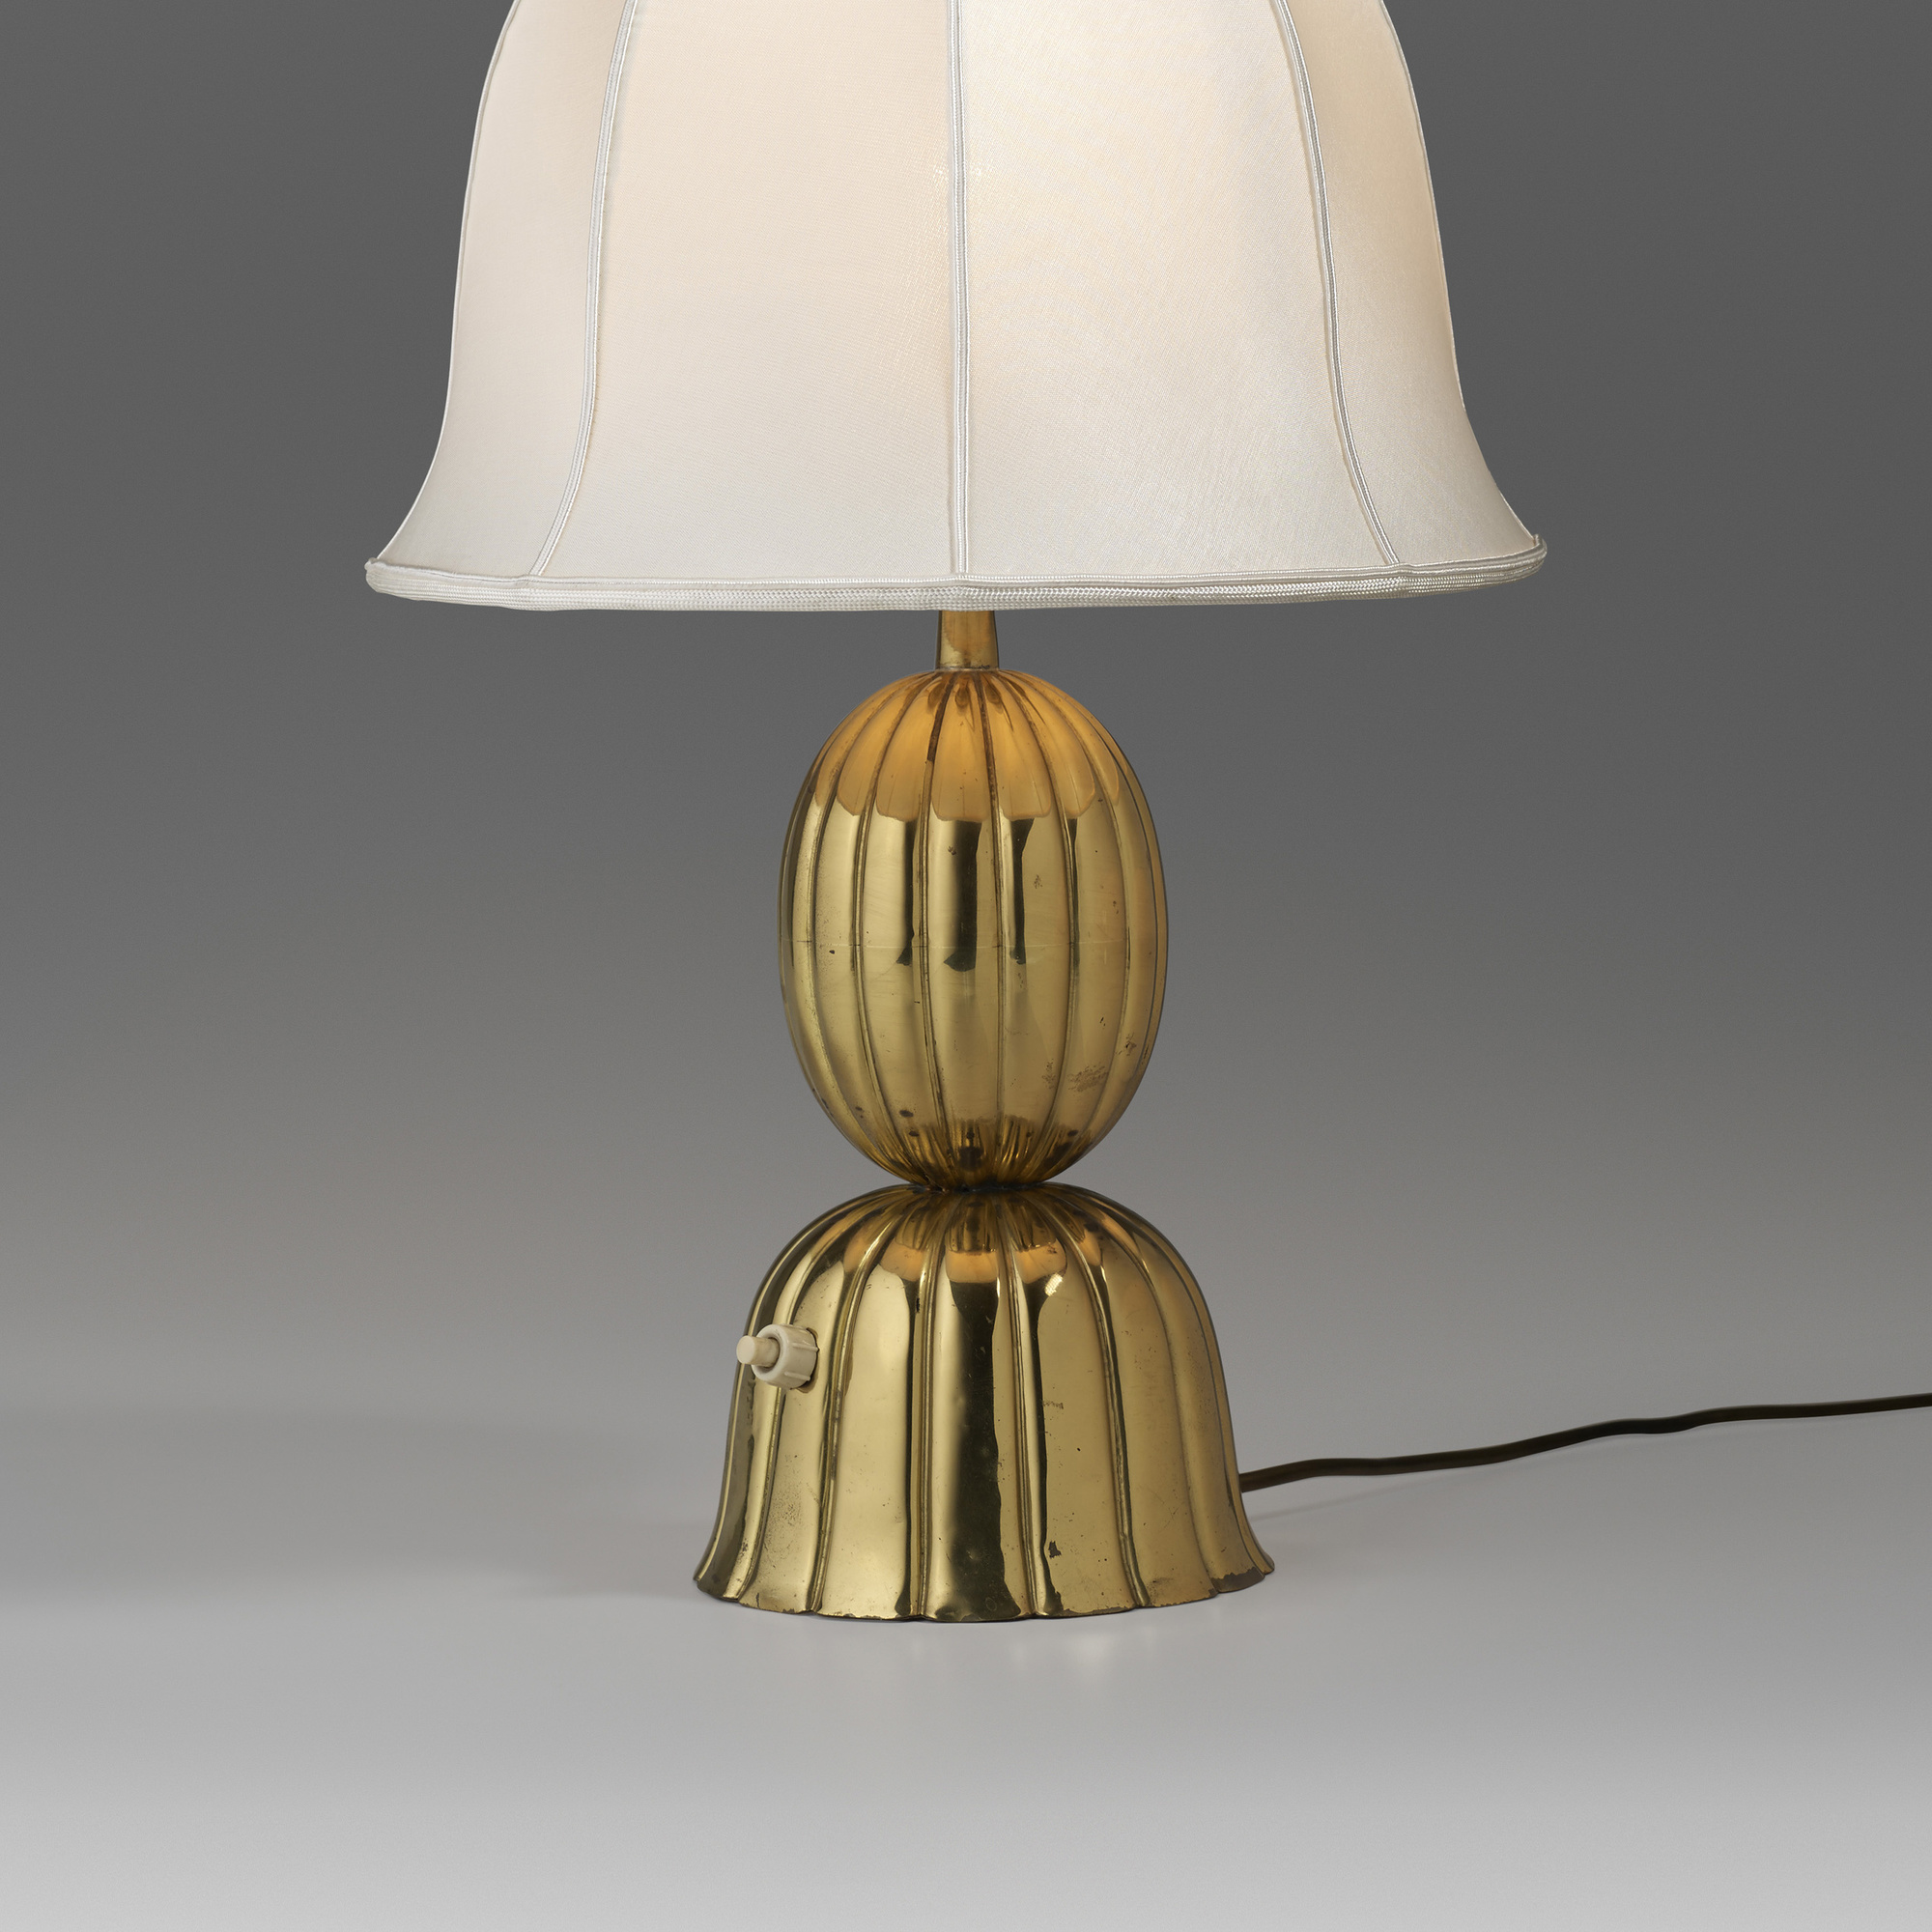 JOSEF HOFFMANN Table Lamp Design Masterworks May - Cabaret table lamps